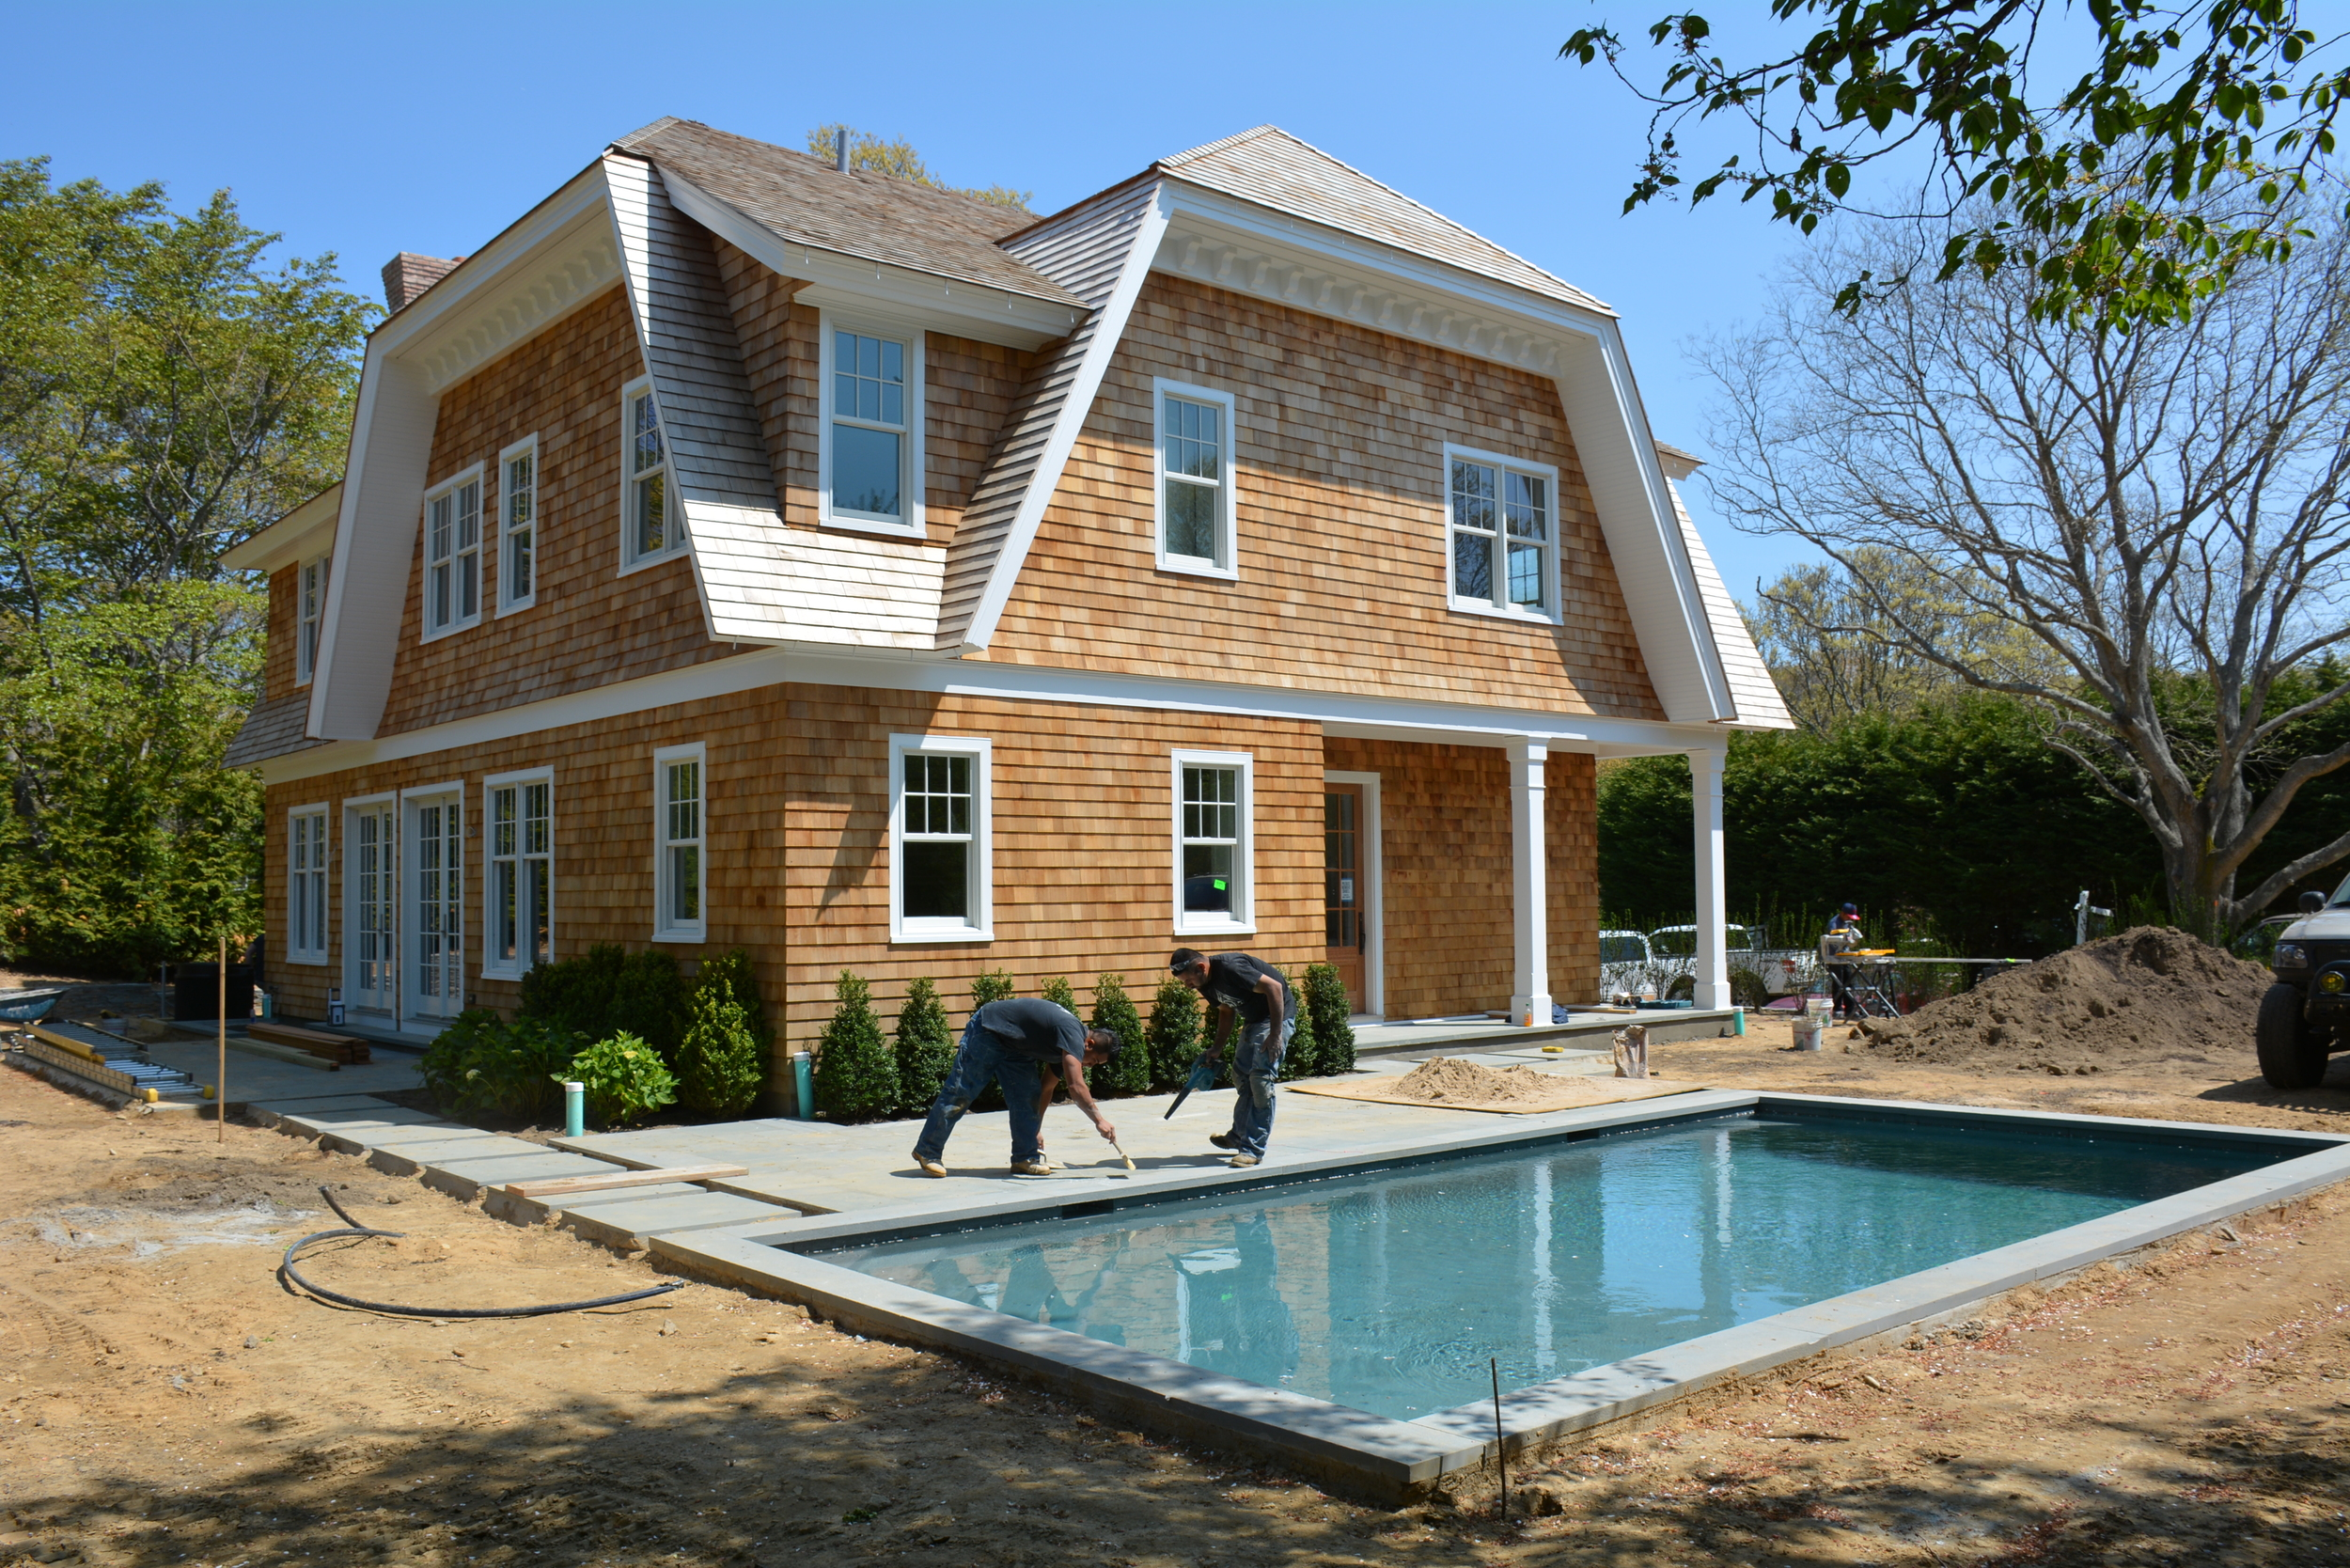 Jason Thomas Architect is nearing completion on our custom home on 25 Inkberry Lane in East Hampton, NY.